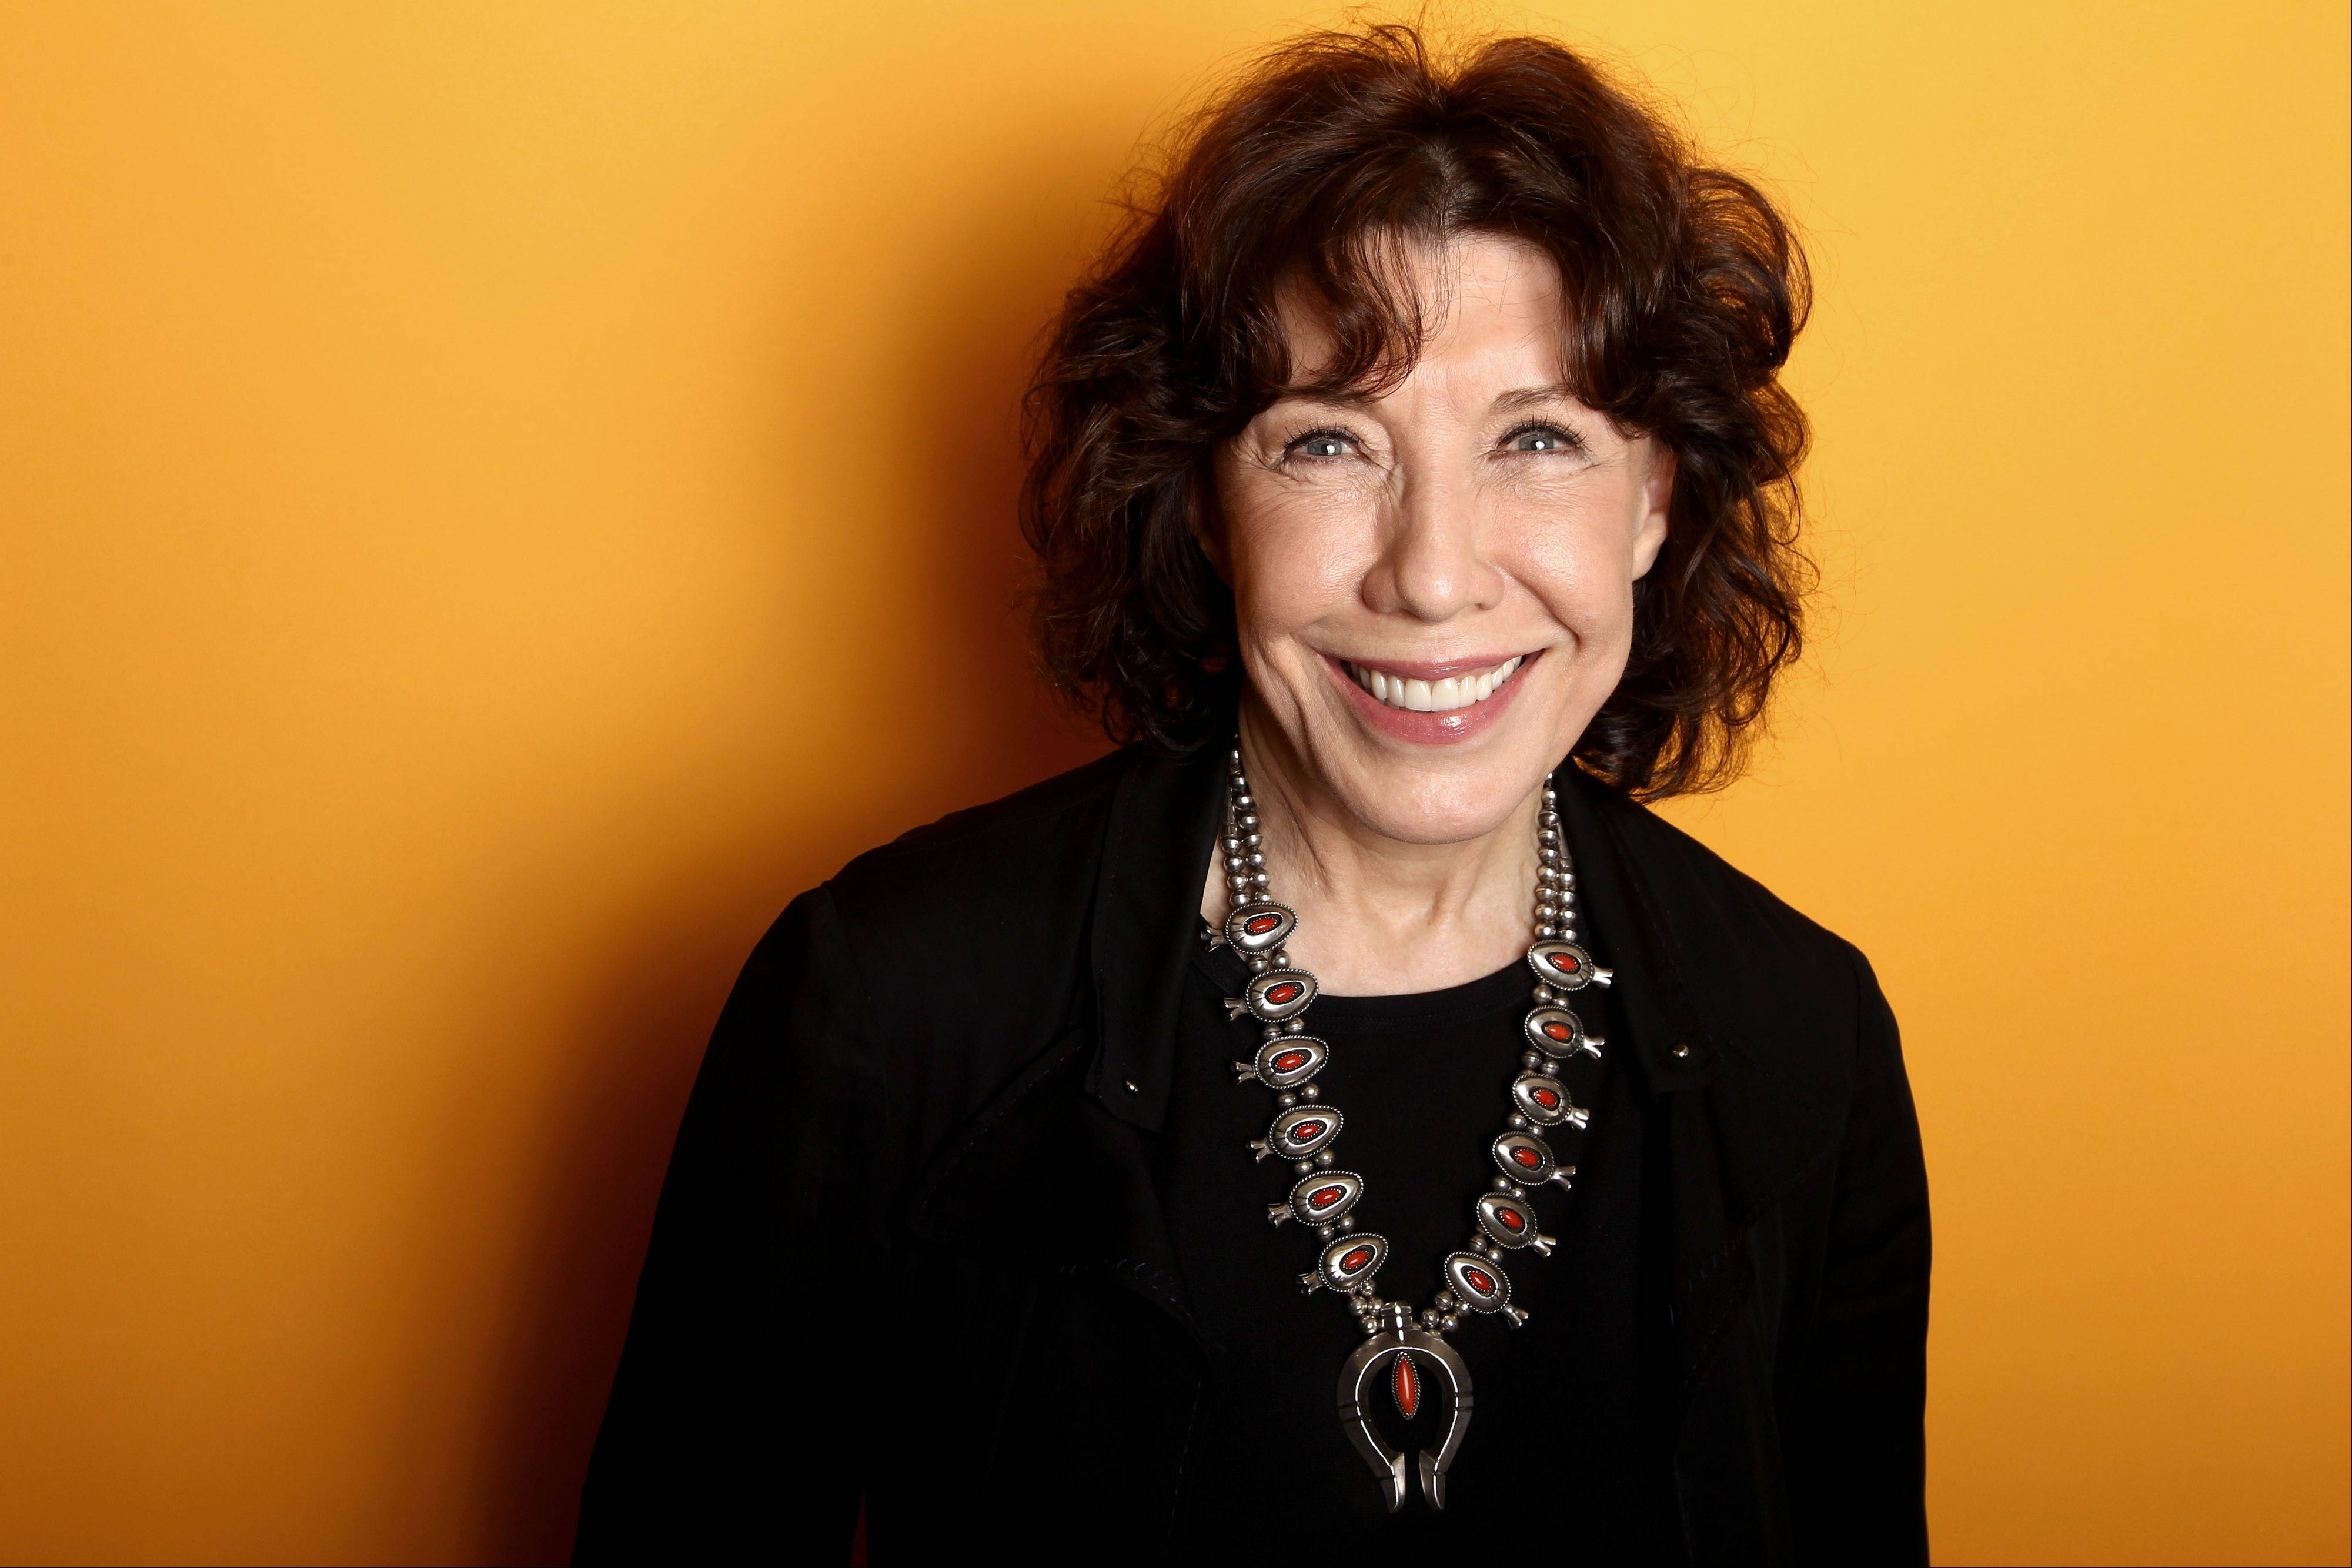 Actress Lily Tomlin poses for a portrait at the Four Seasons Hotel, in Los Angeles. Tomlin�s publicist Jennifer Allen told People Magazine and other media outlets Tuesday that the 74-year-old actress and comedian married 78-year-old Jane Wagner in a private New Year�s Eve ceremony in Los Angeles.